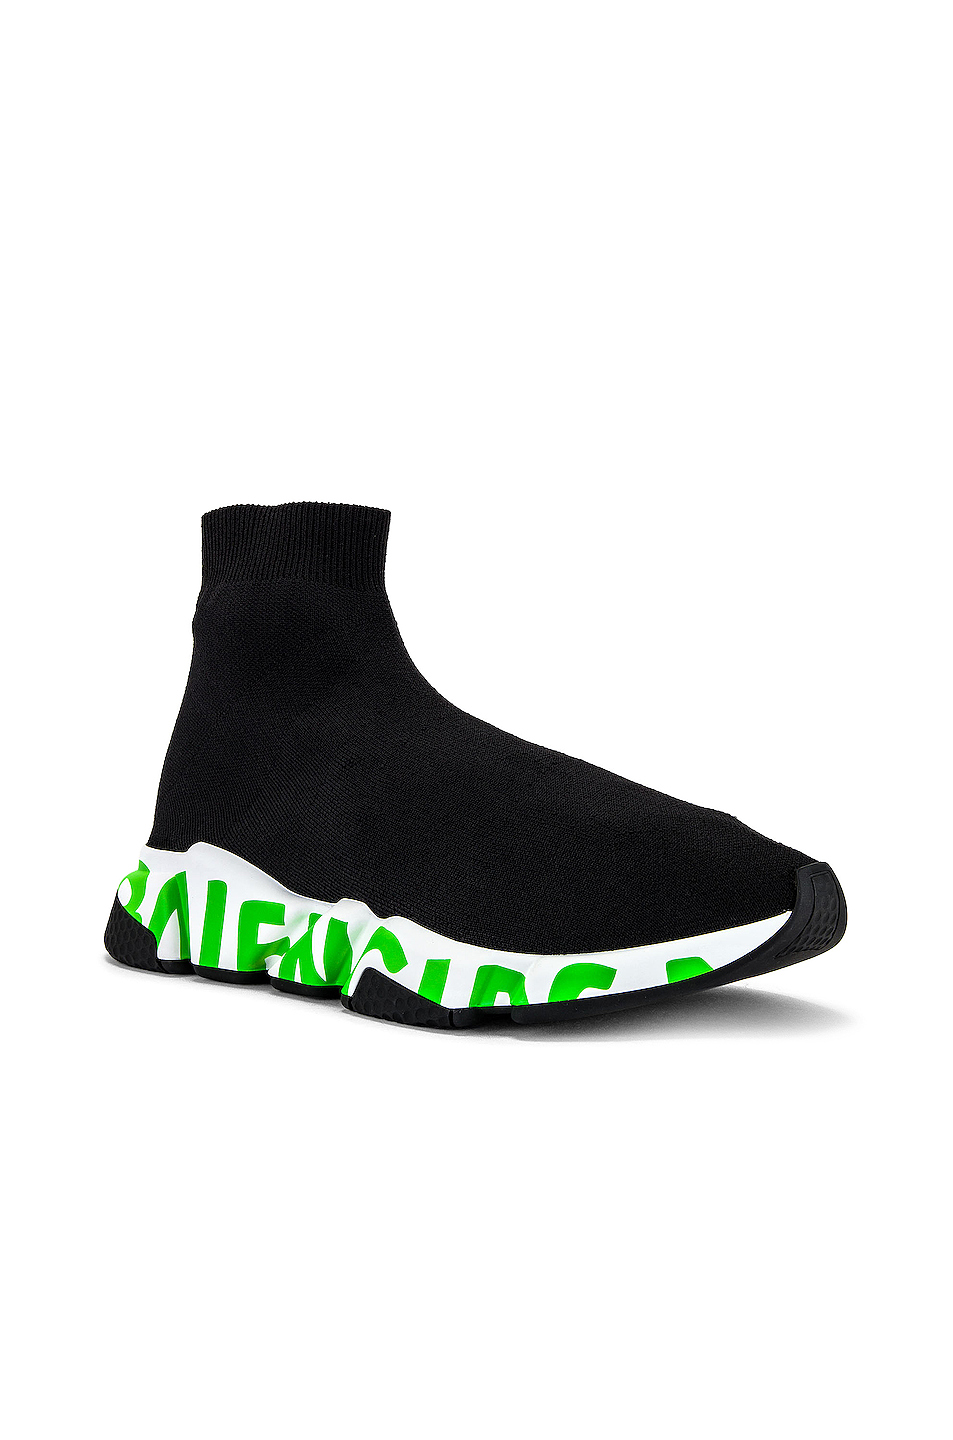 Balenciaga Speed Light Graffiti in Black & Fluo